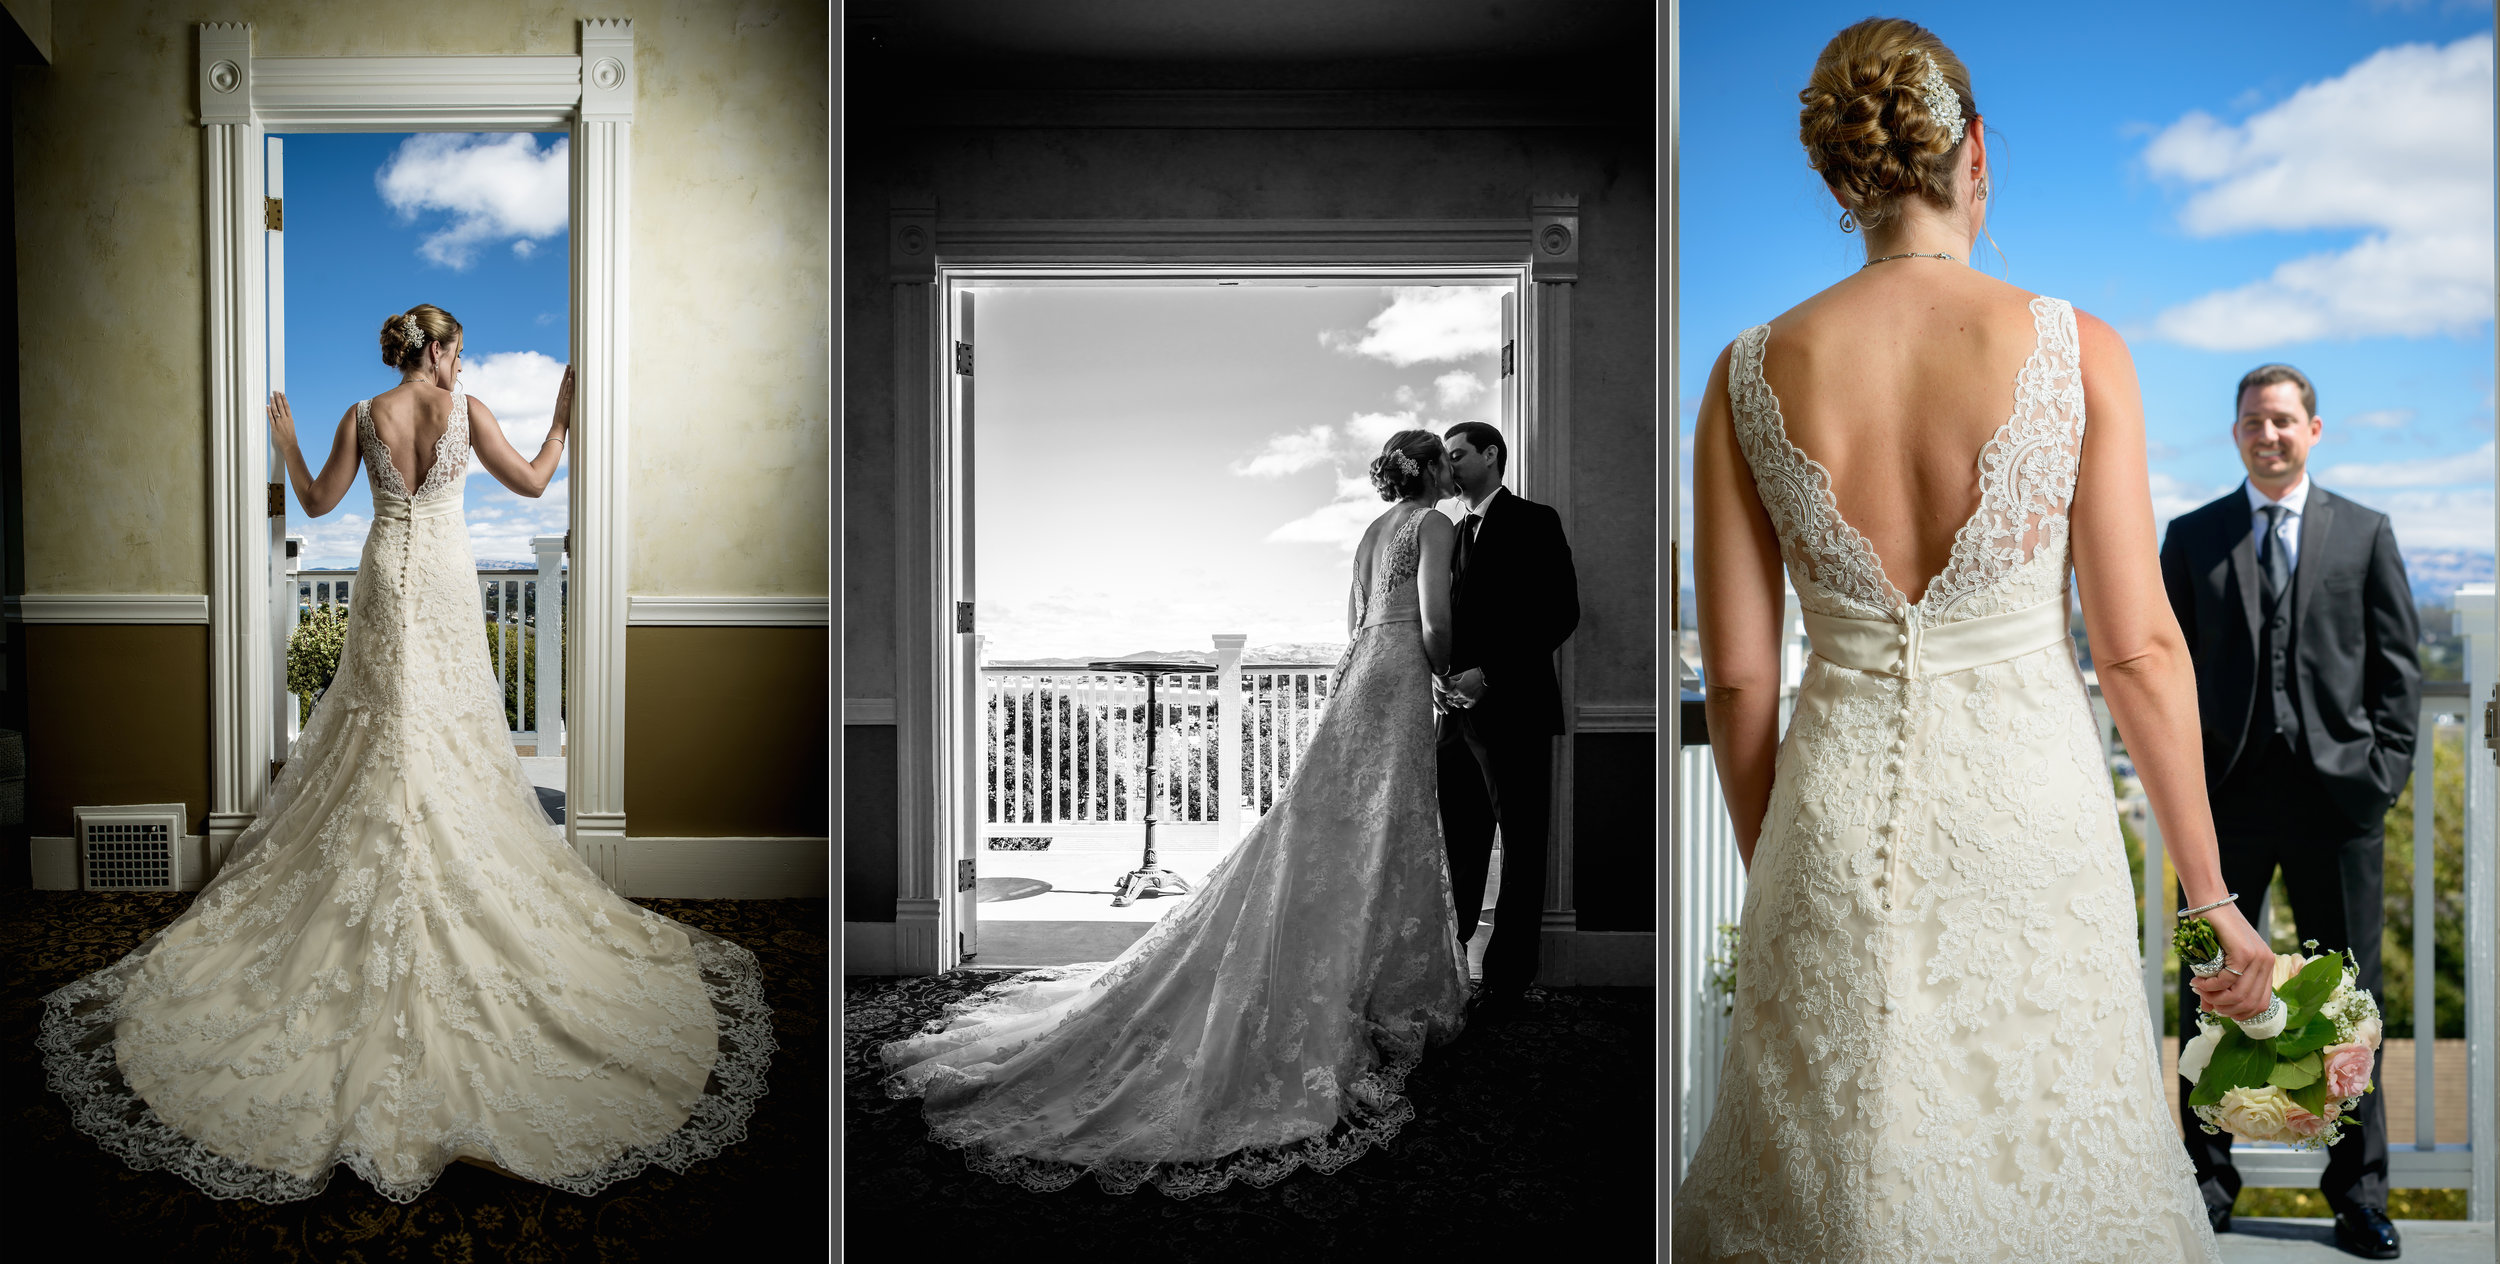 Bride and groom framed in a doorway on a sunny day. Wedding photos taken by Chris Schmauch at The Perry House in Pacific Grove, California.